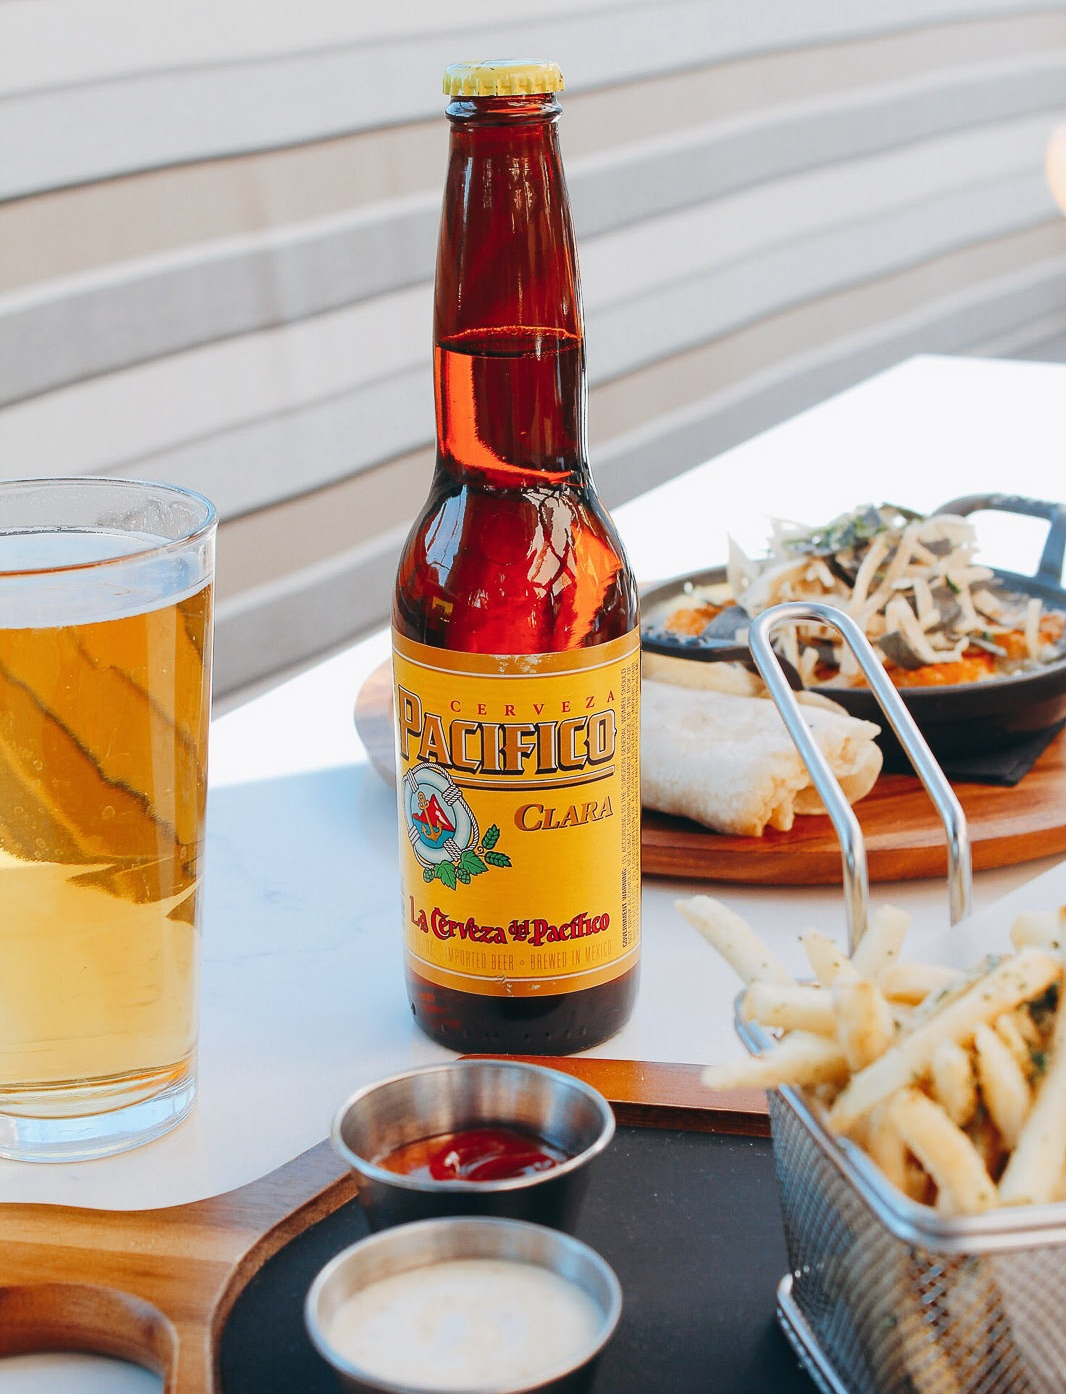 Pacifico Bottle and Pint Glass of Beer